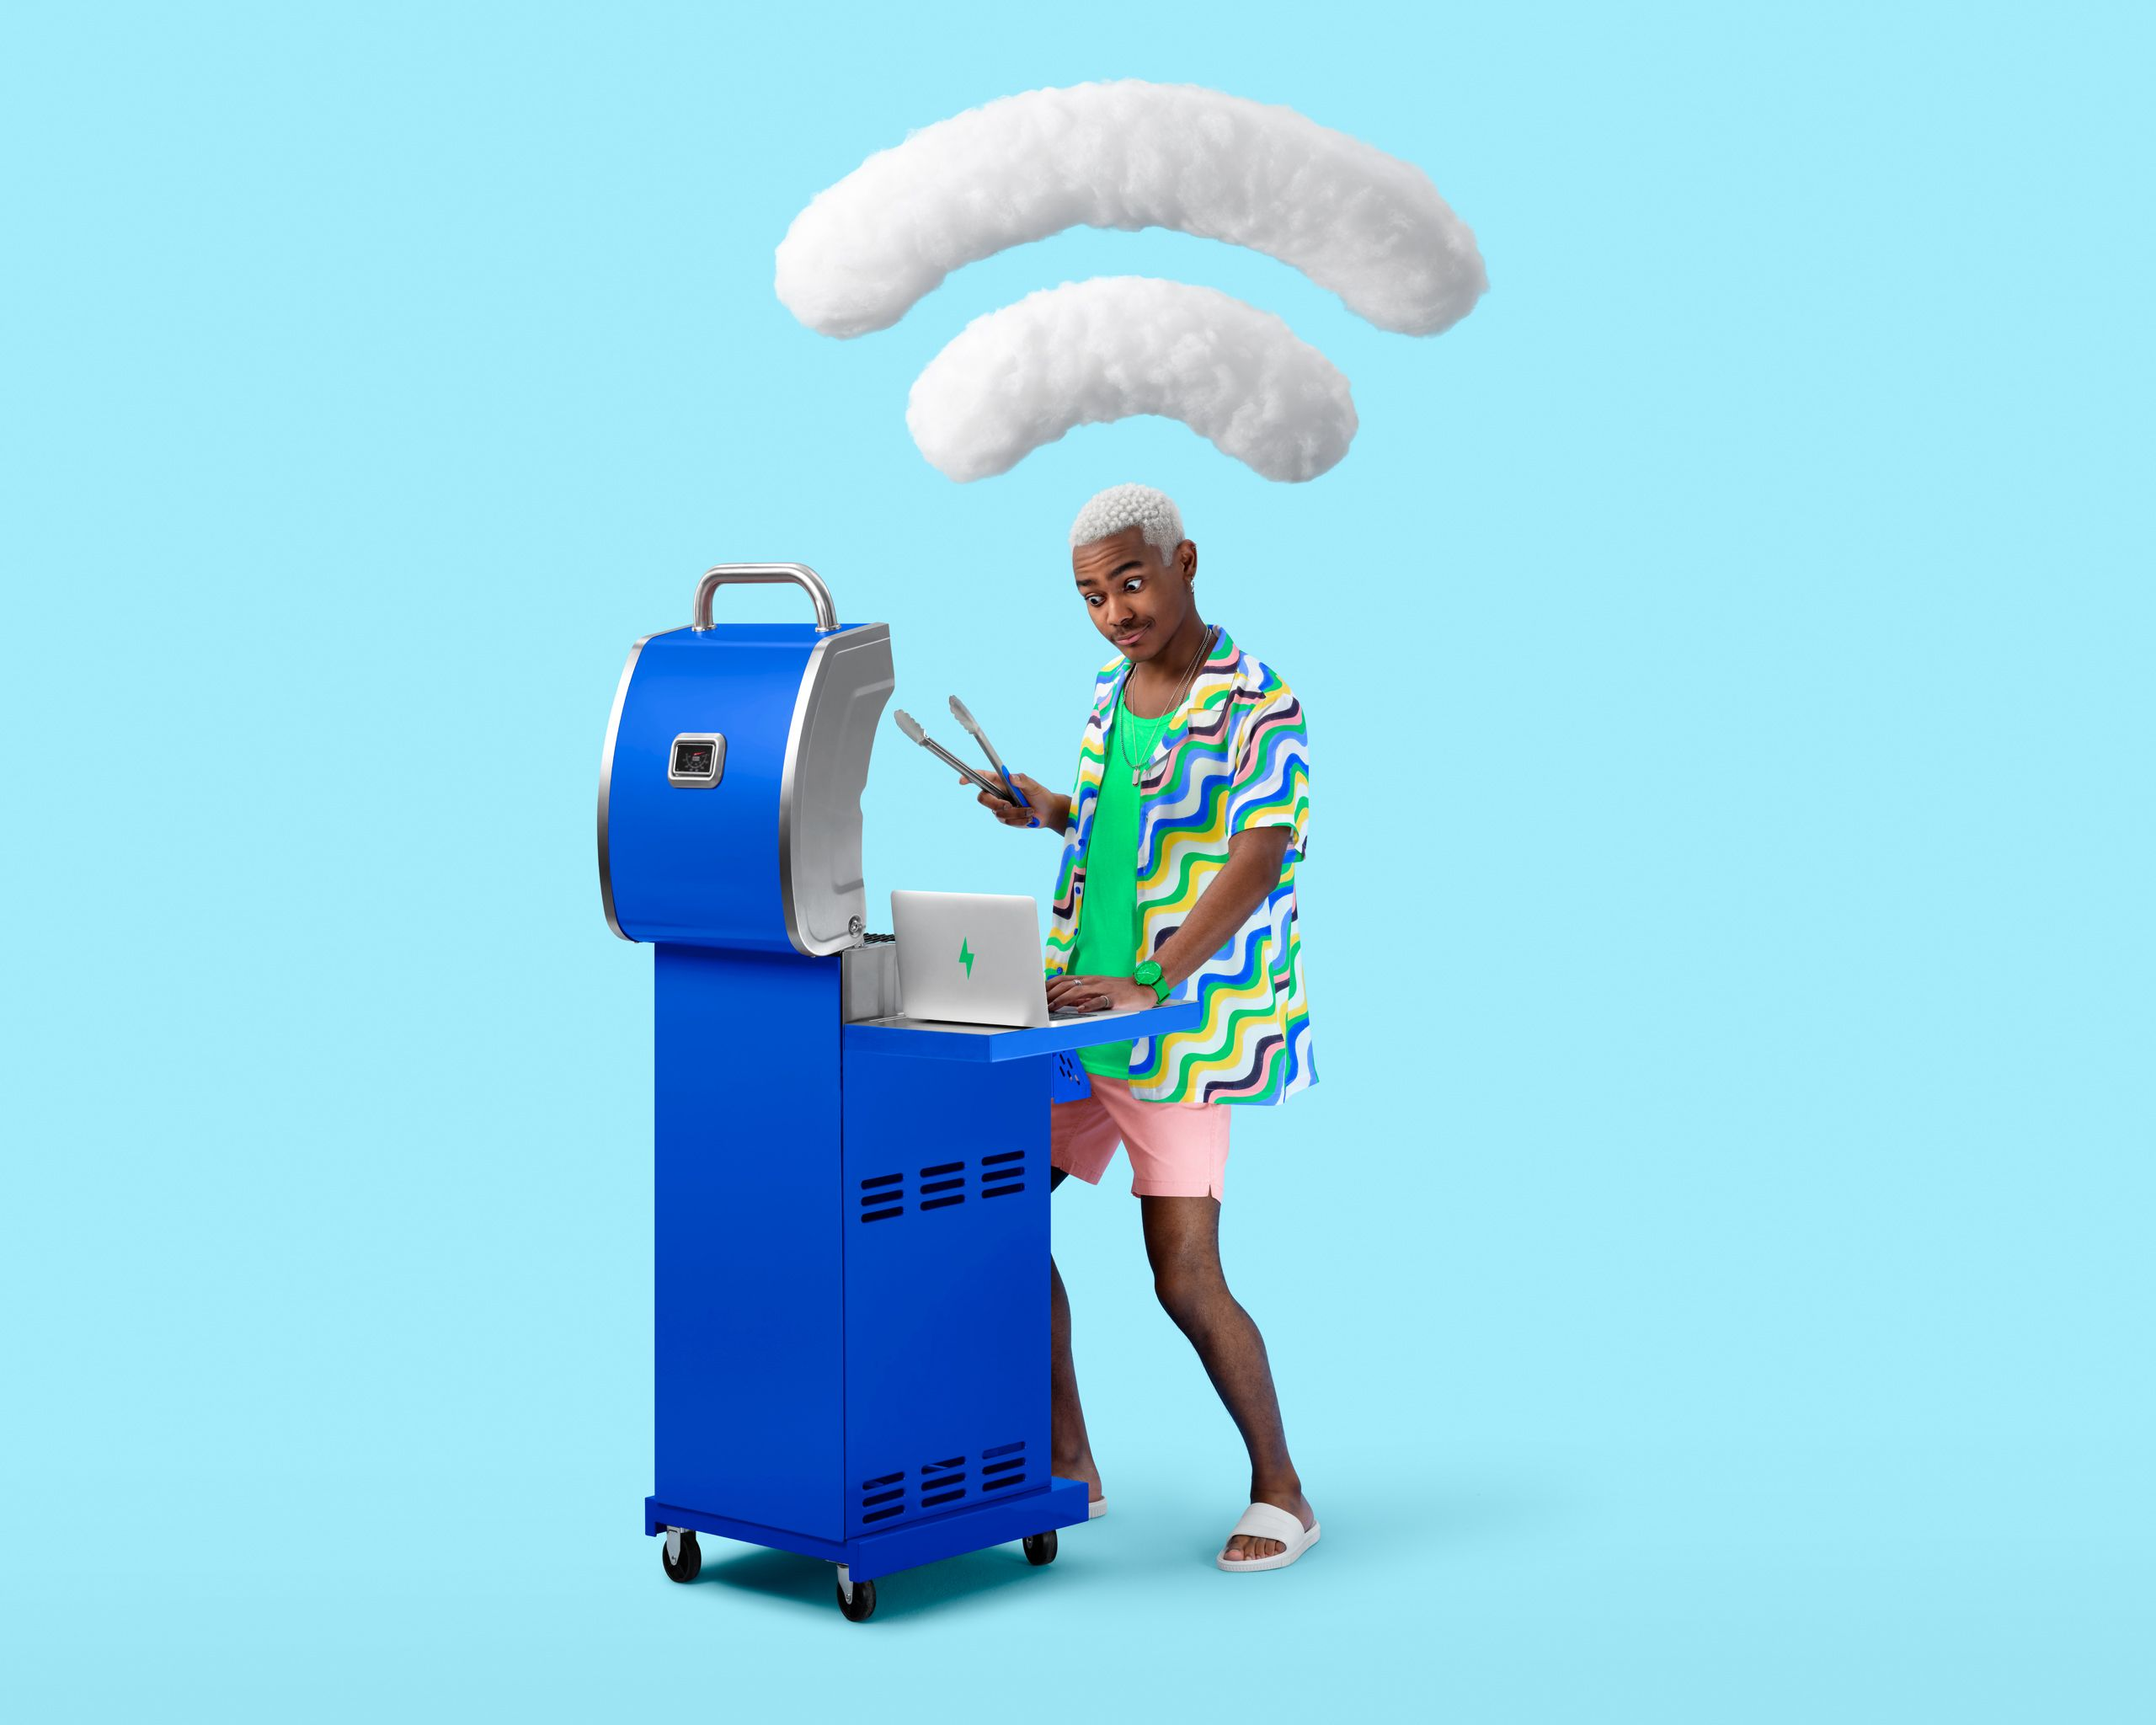 Man making a funny face has a laptop on a barbecue. There is a wifi symbol in plush clouds above the man.